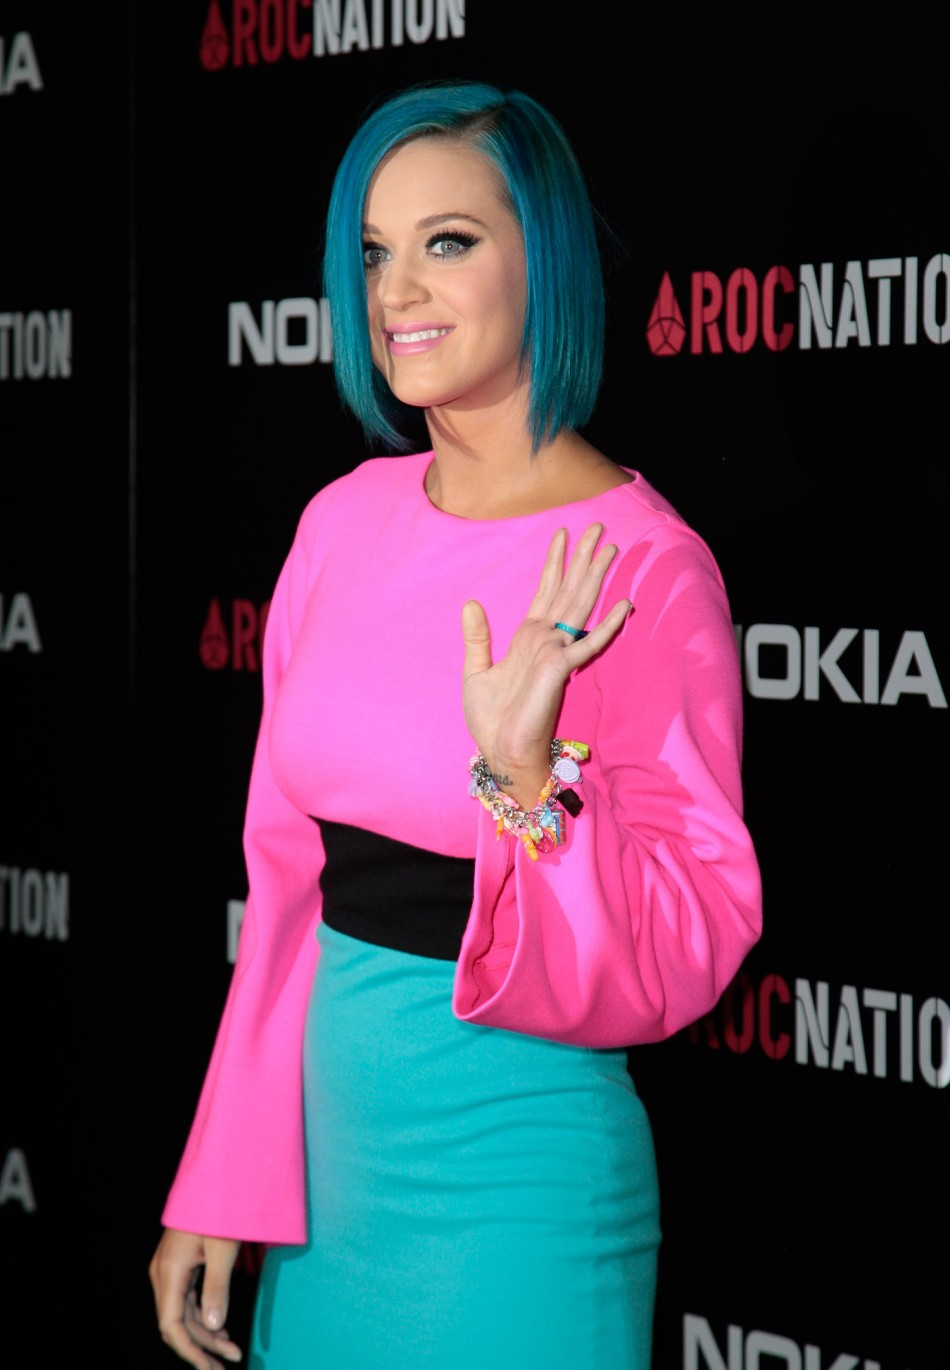 The critical life moments for the singer katy perry and a personal opinion on her music